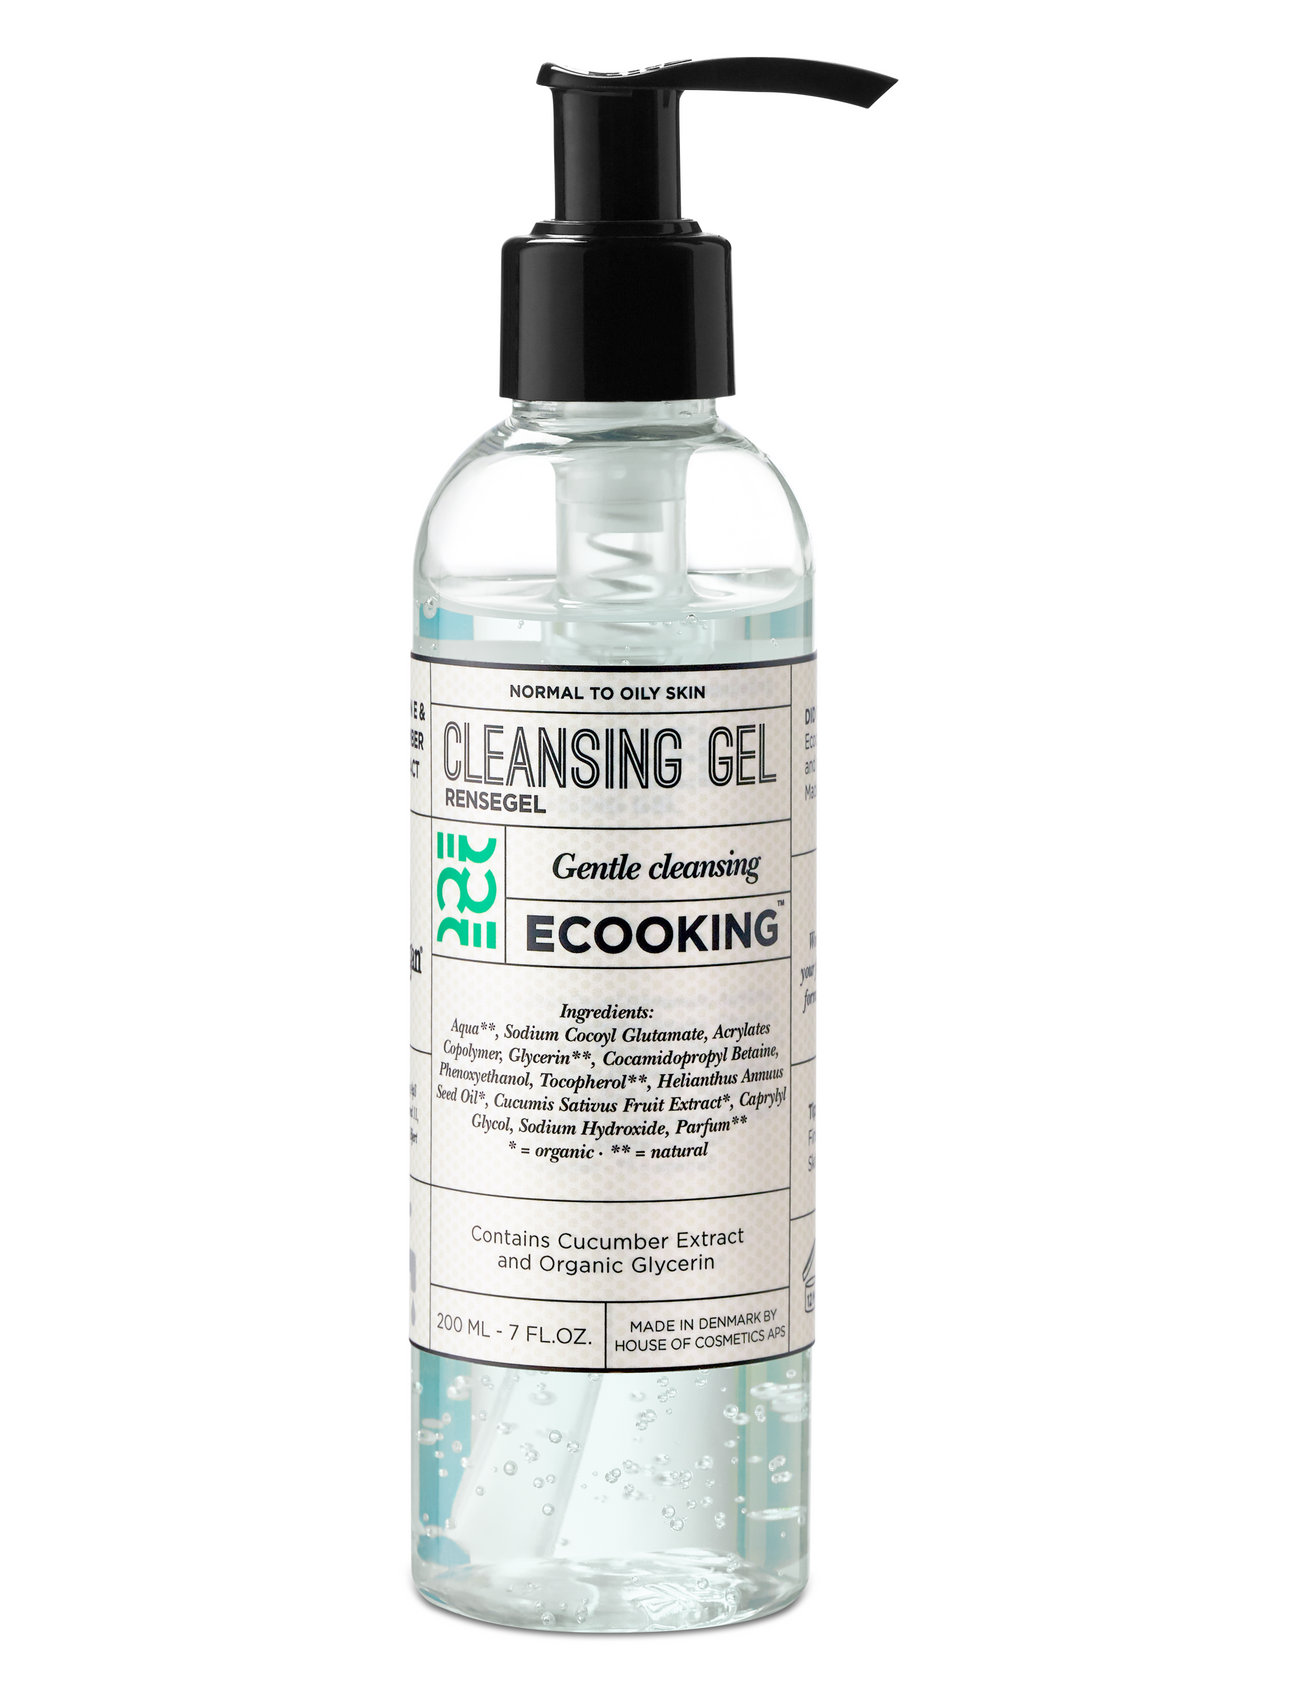 Ecooking Cleansing gel - CLEAR